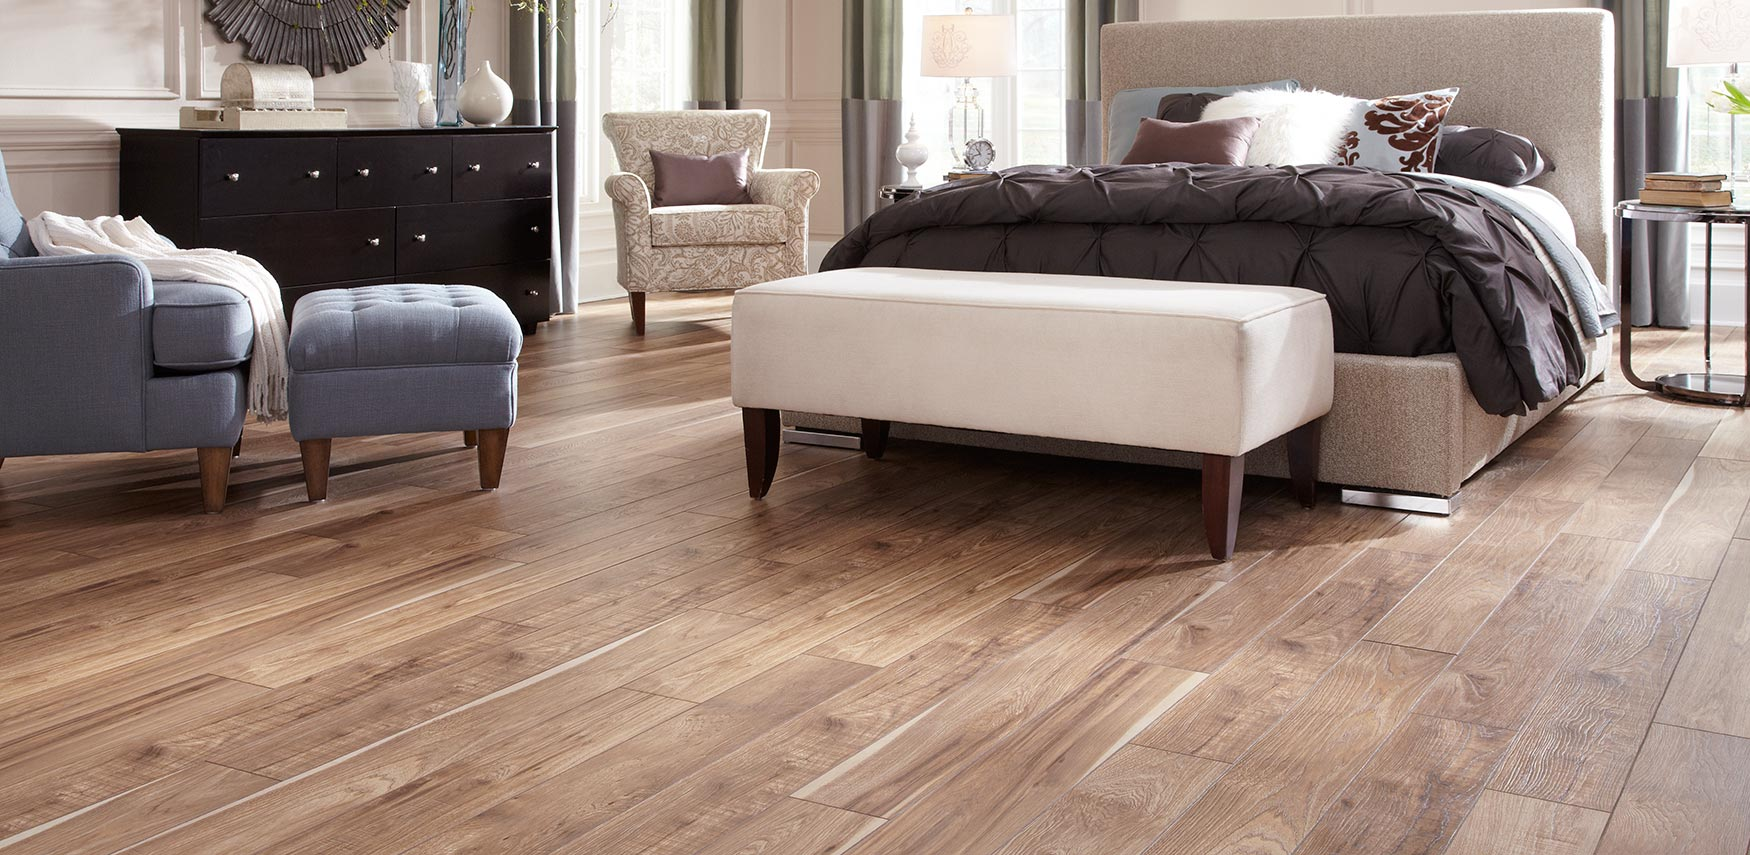 Mannington flooring resilient laminate hardwood for Home flooring